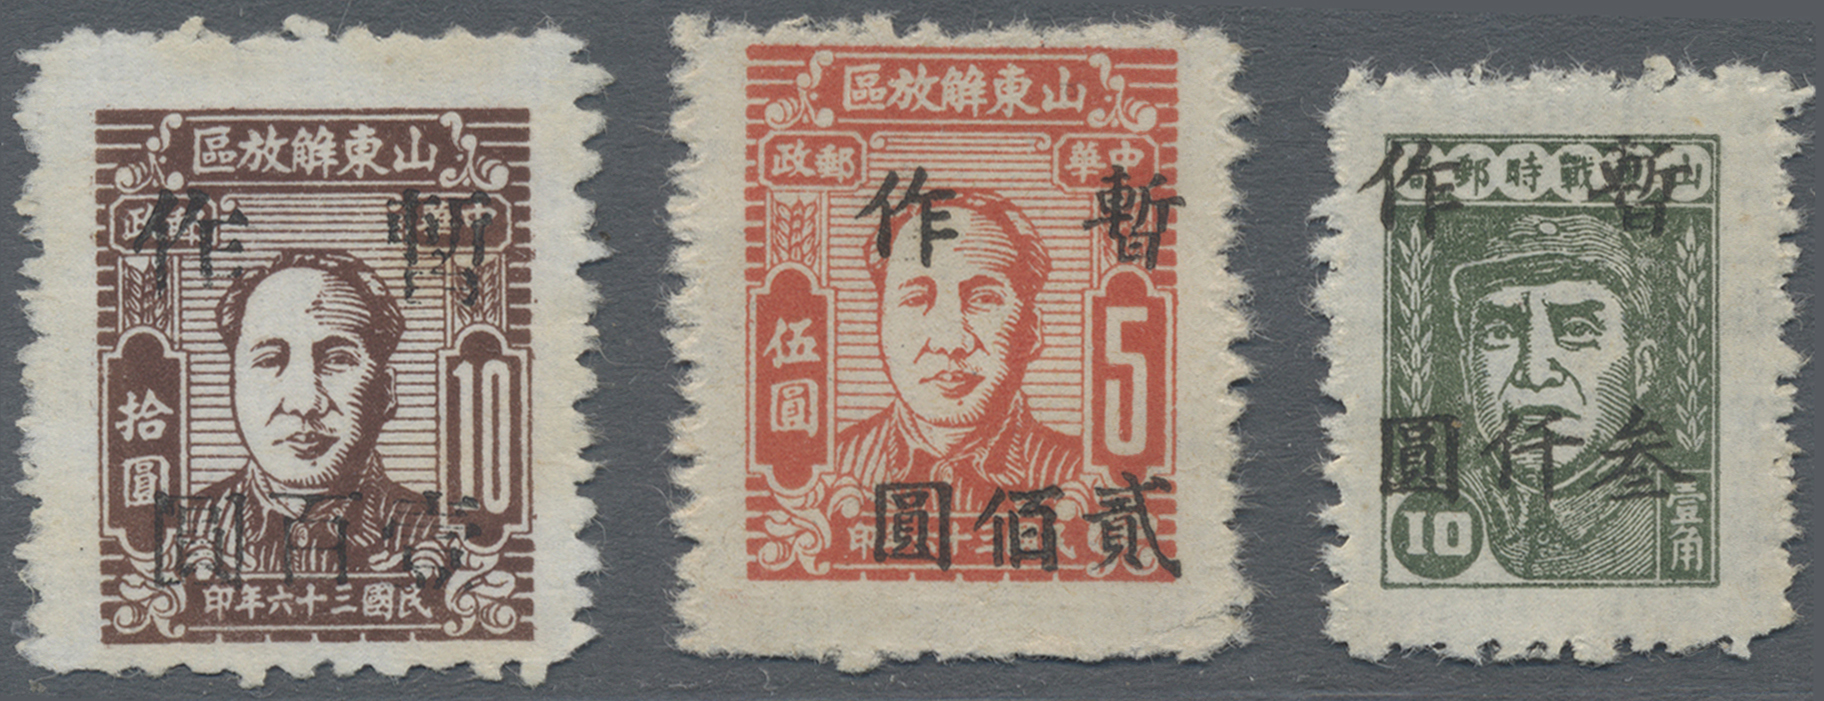 Lot 05083 - China - Volksrepublik - Provinzen  -  Auktionshaus Christoph Gärtner GmbH & Co. KG Sale #46 Special Auction China - including Liberated Areas